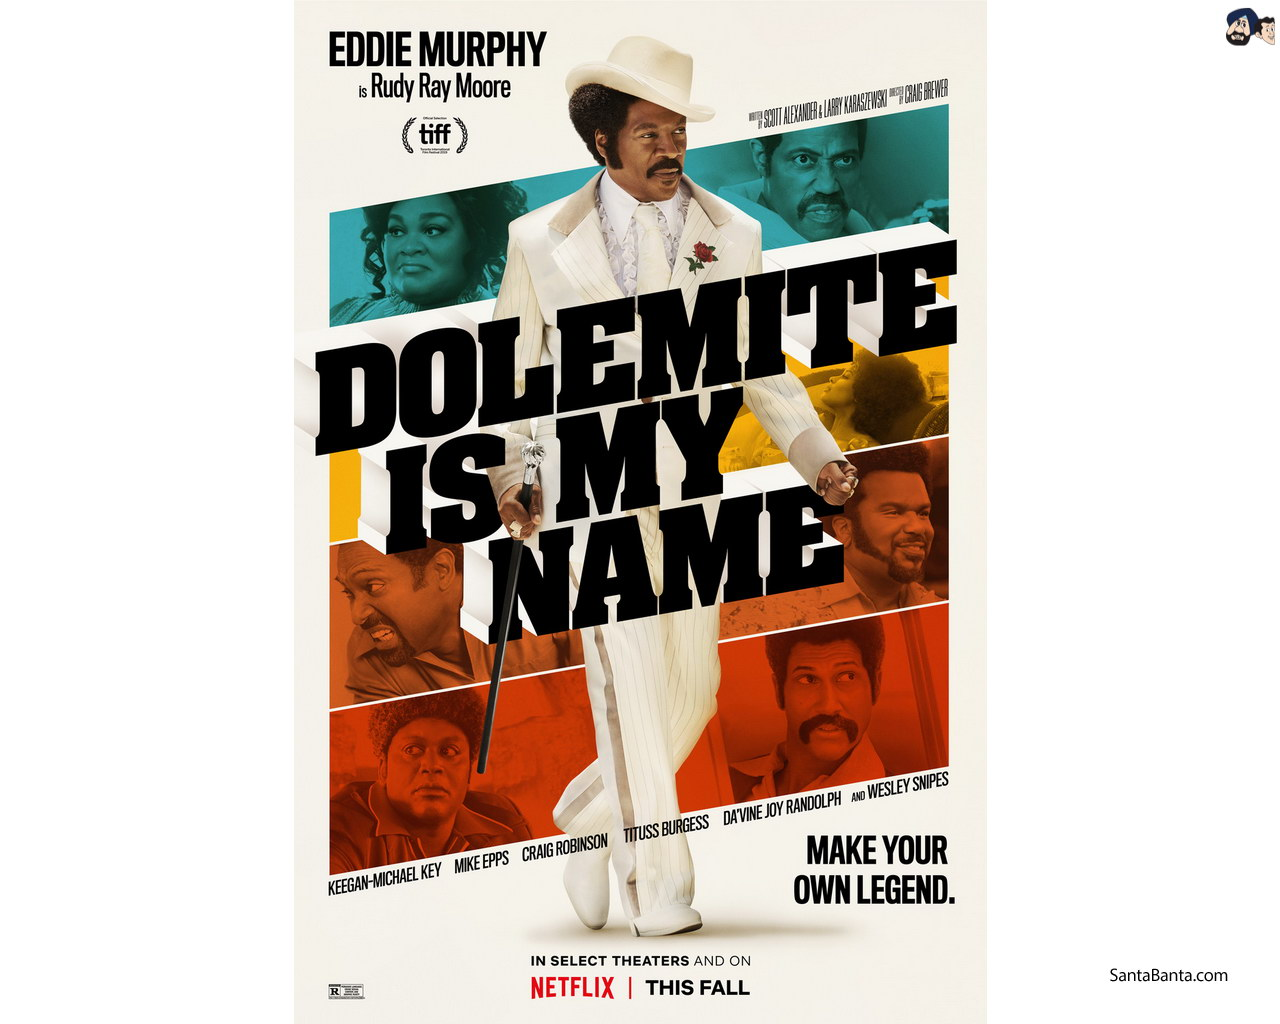 Dolemite Is My Name Wallpaper 1 1280x1024